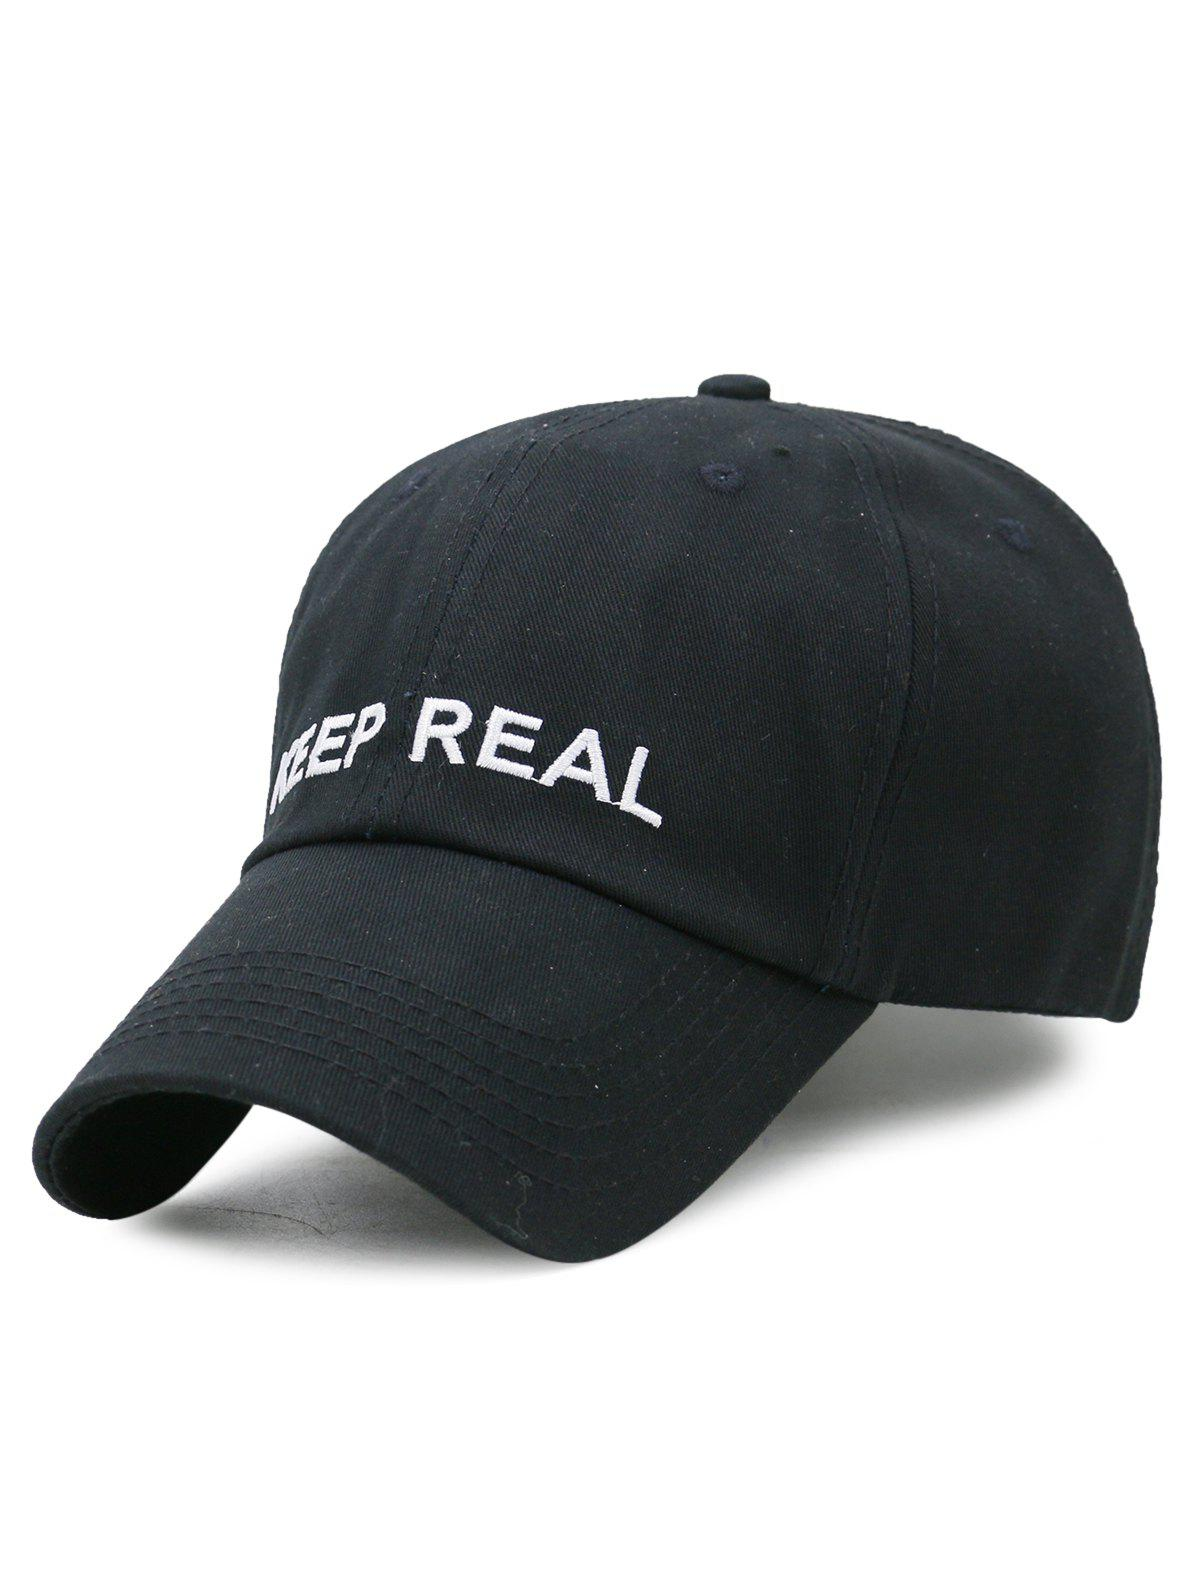 Casquette de Baseball Réglable Motif KEEP REAL Style Simple - Noir